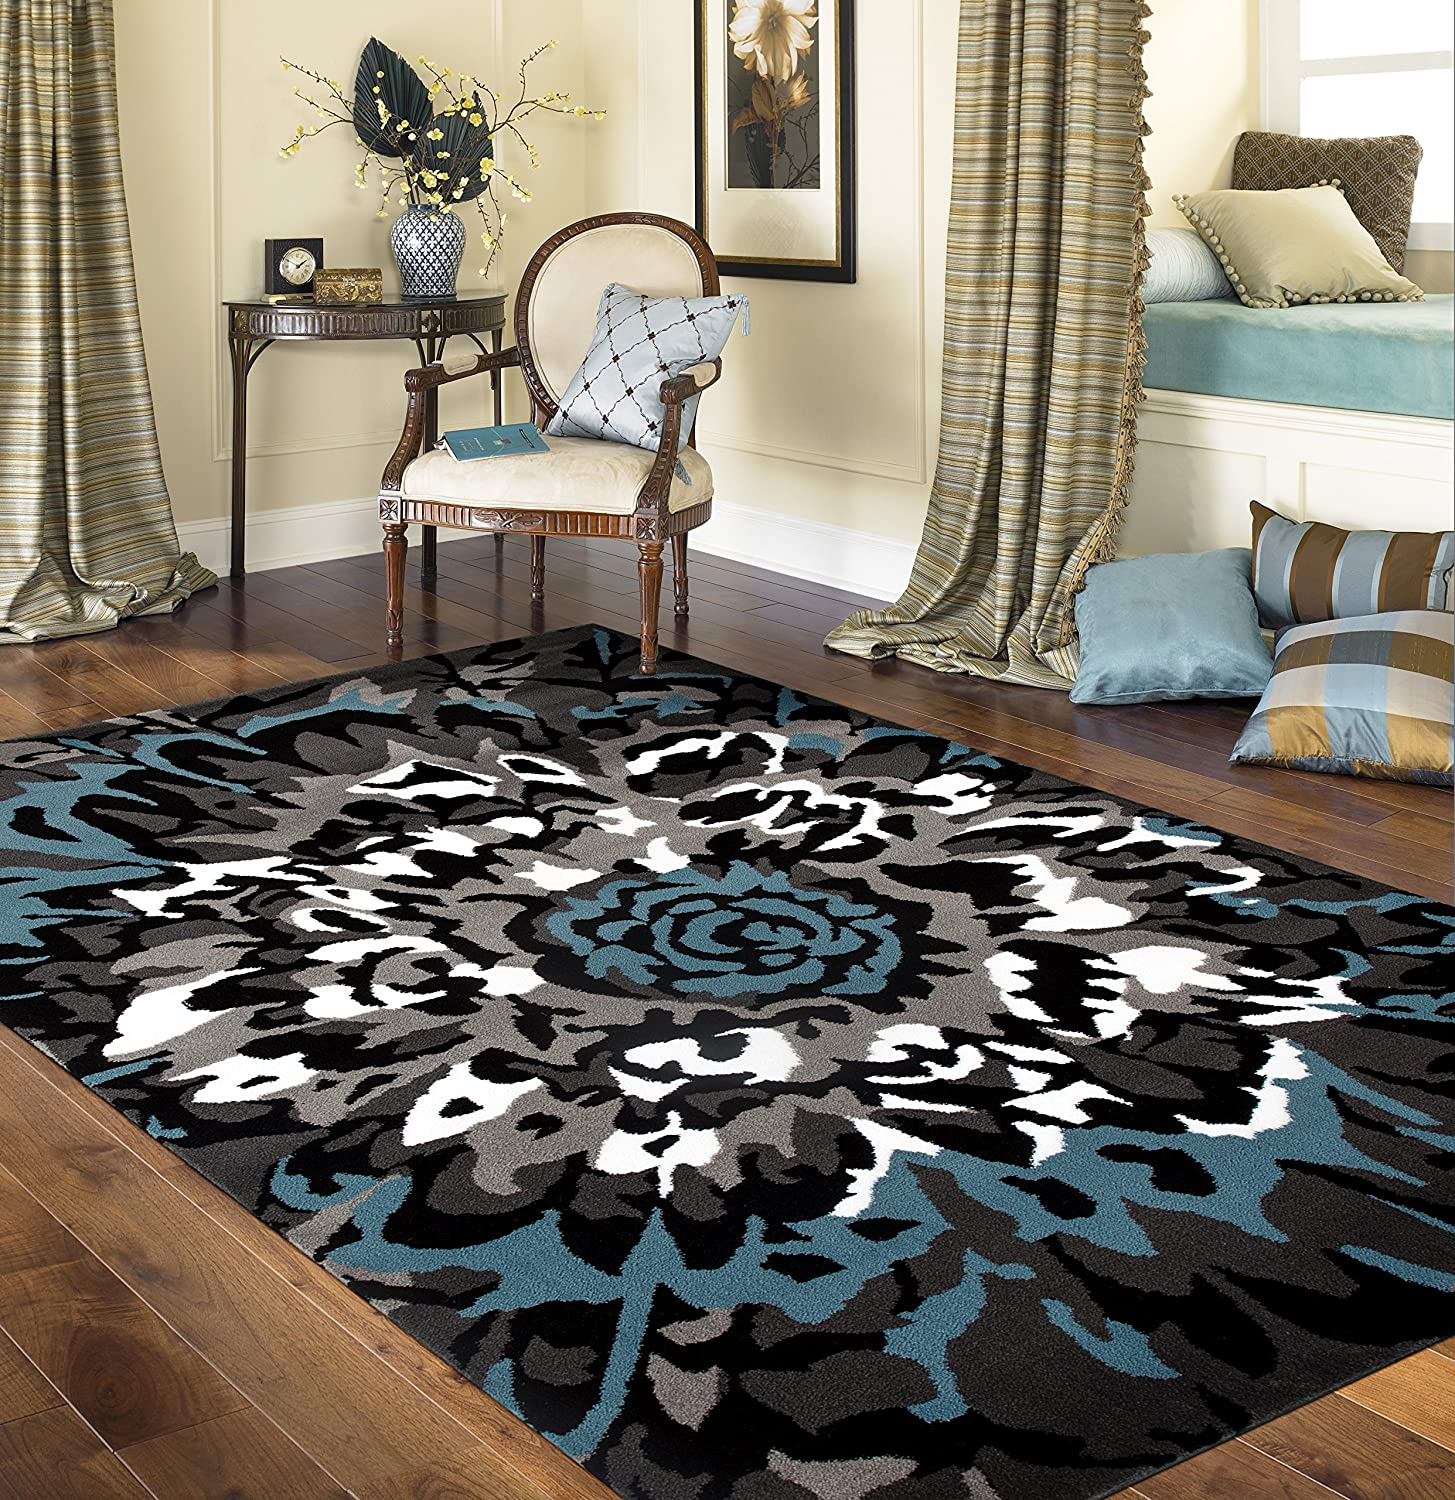 Modern Large Floral Pattern Area Rug 2' Latest item x Factory outlet 3' Gray Blue